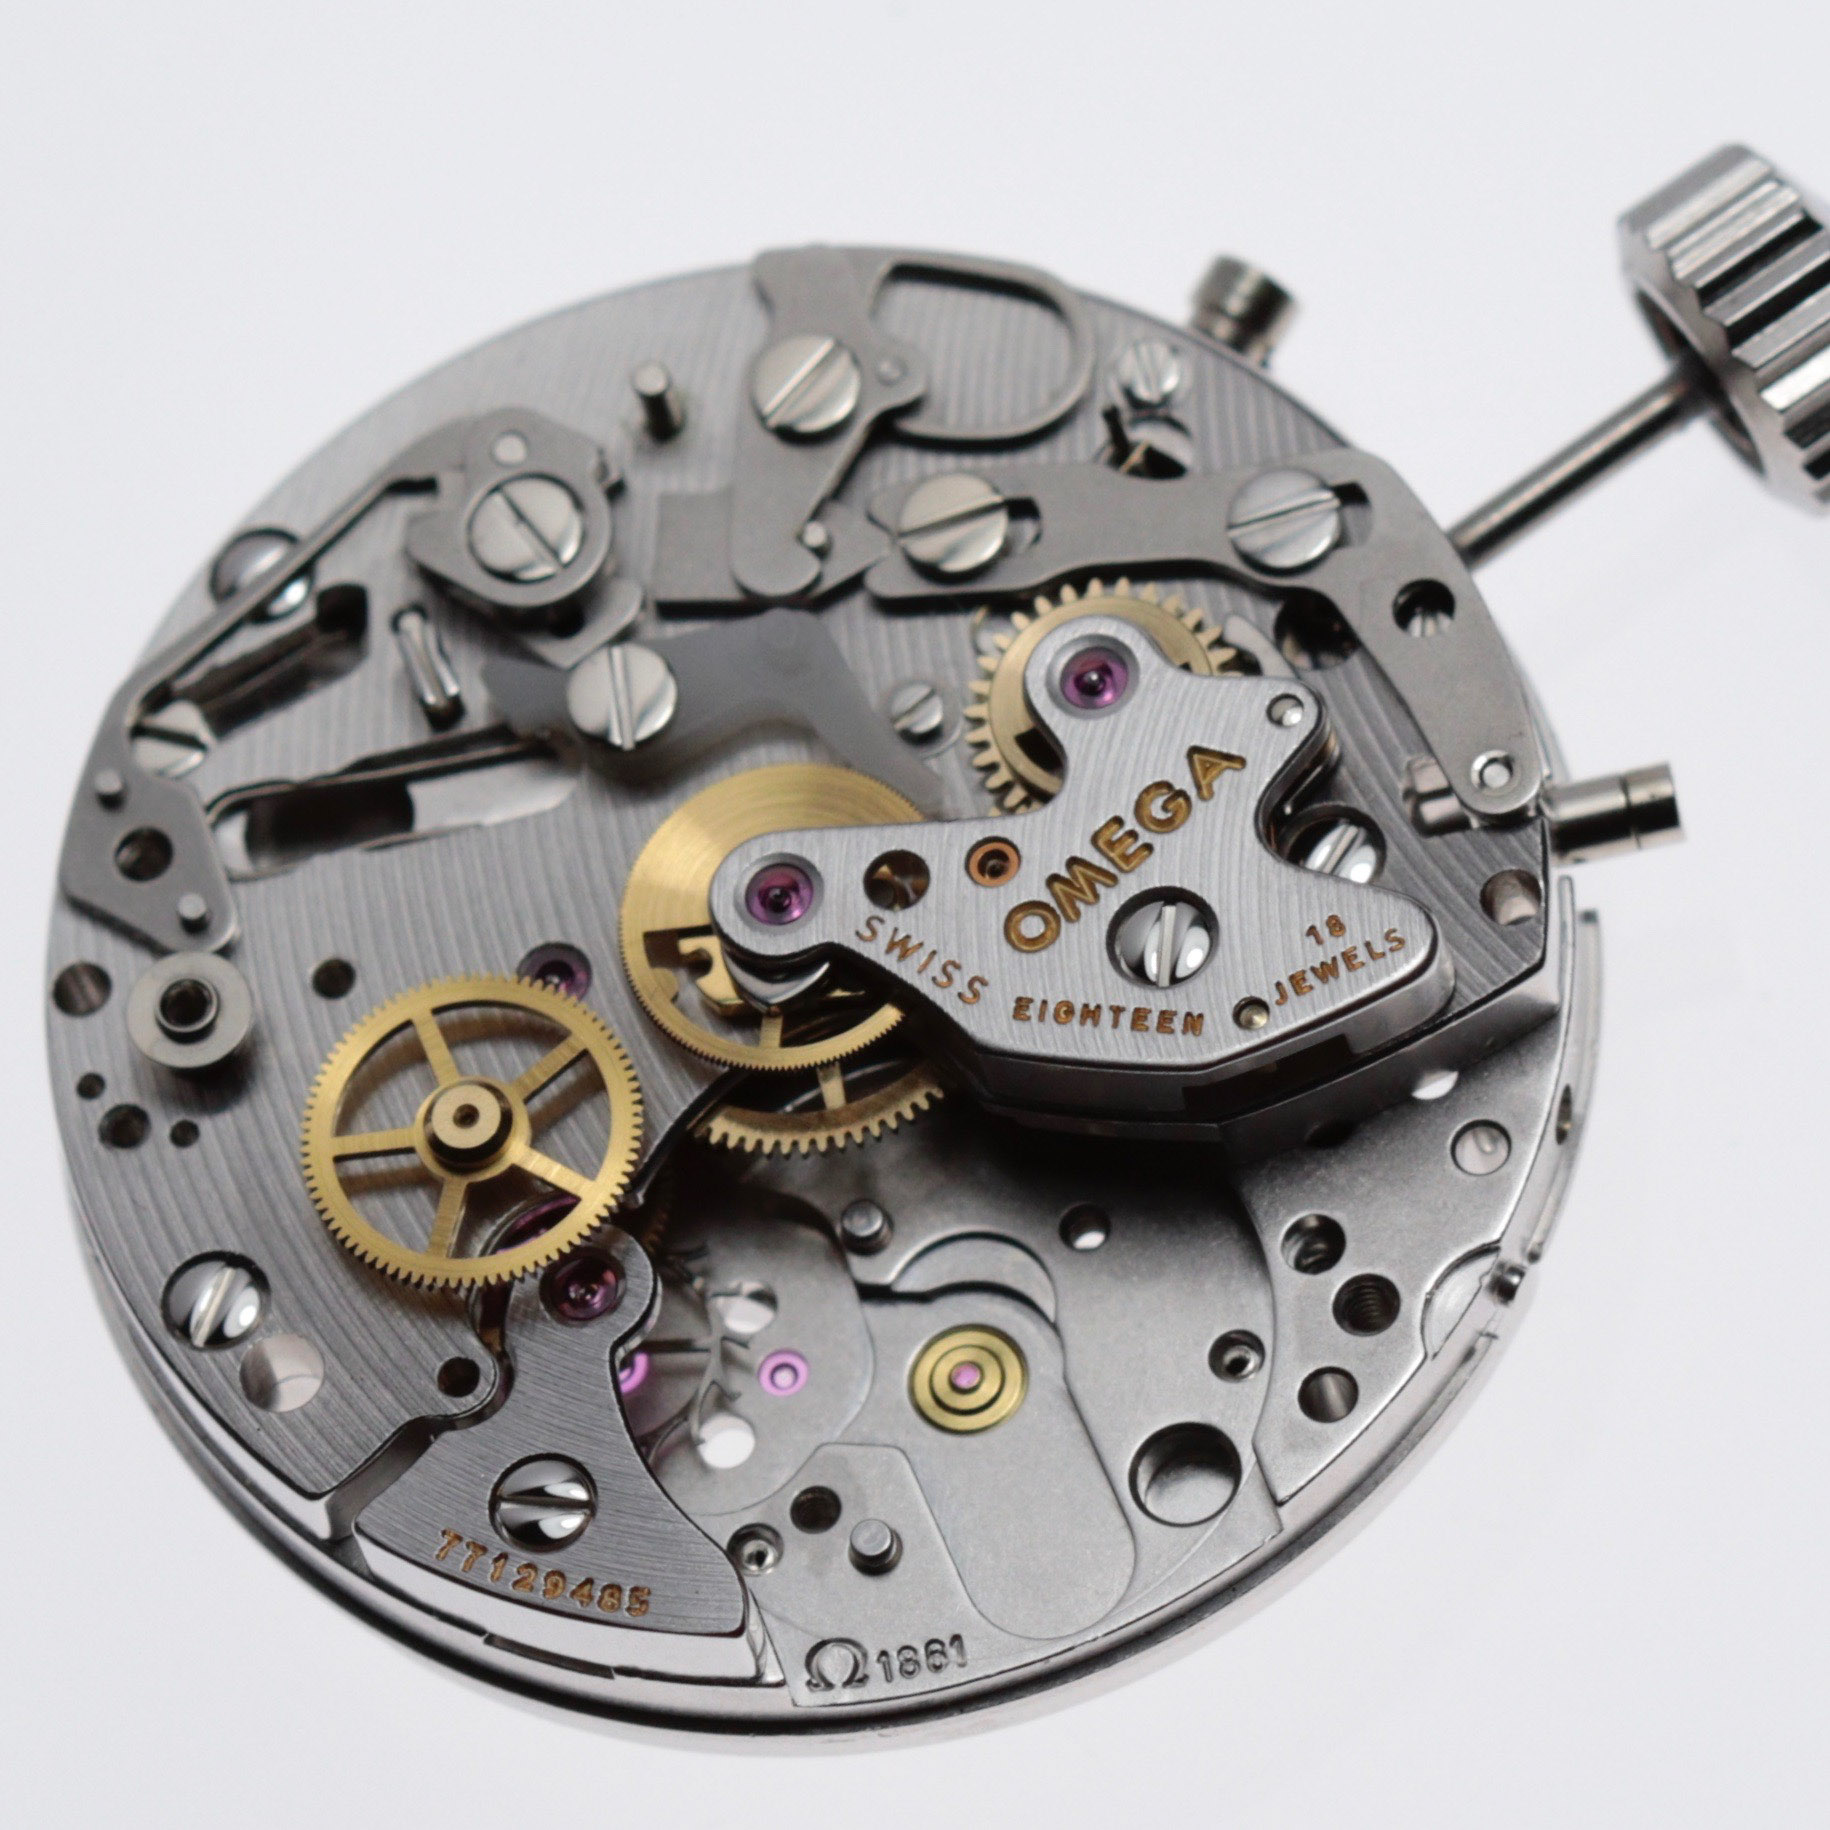 The balance and escapement is removed